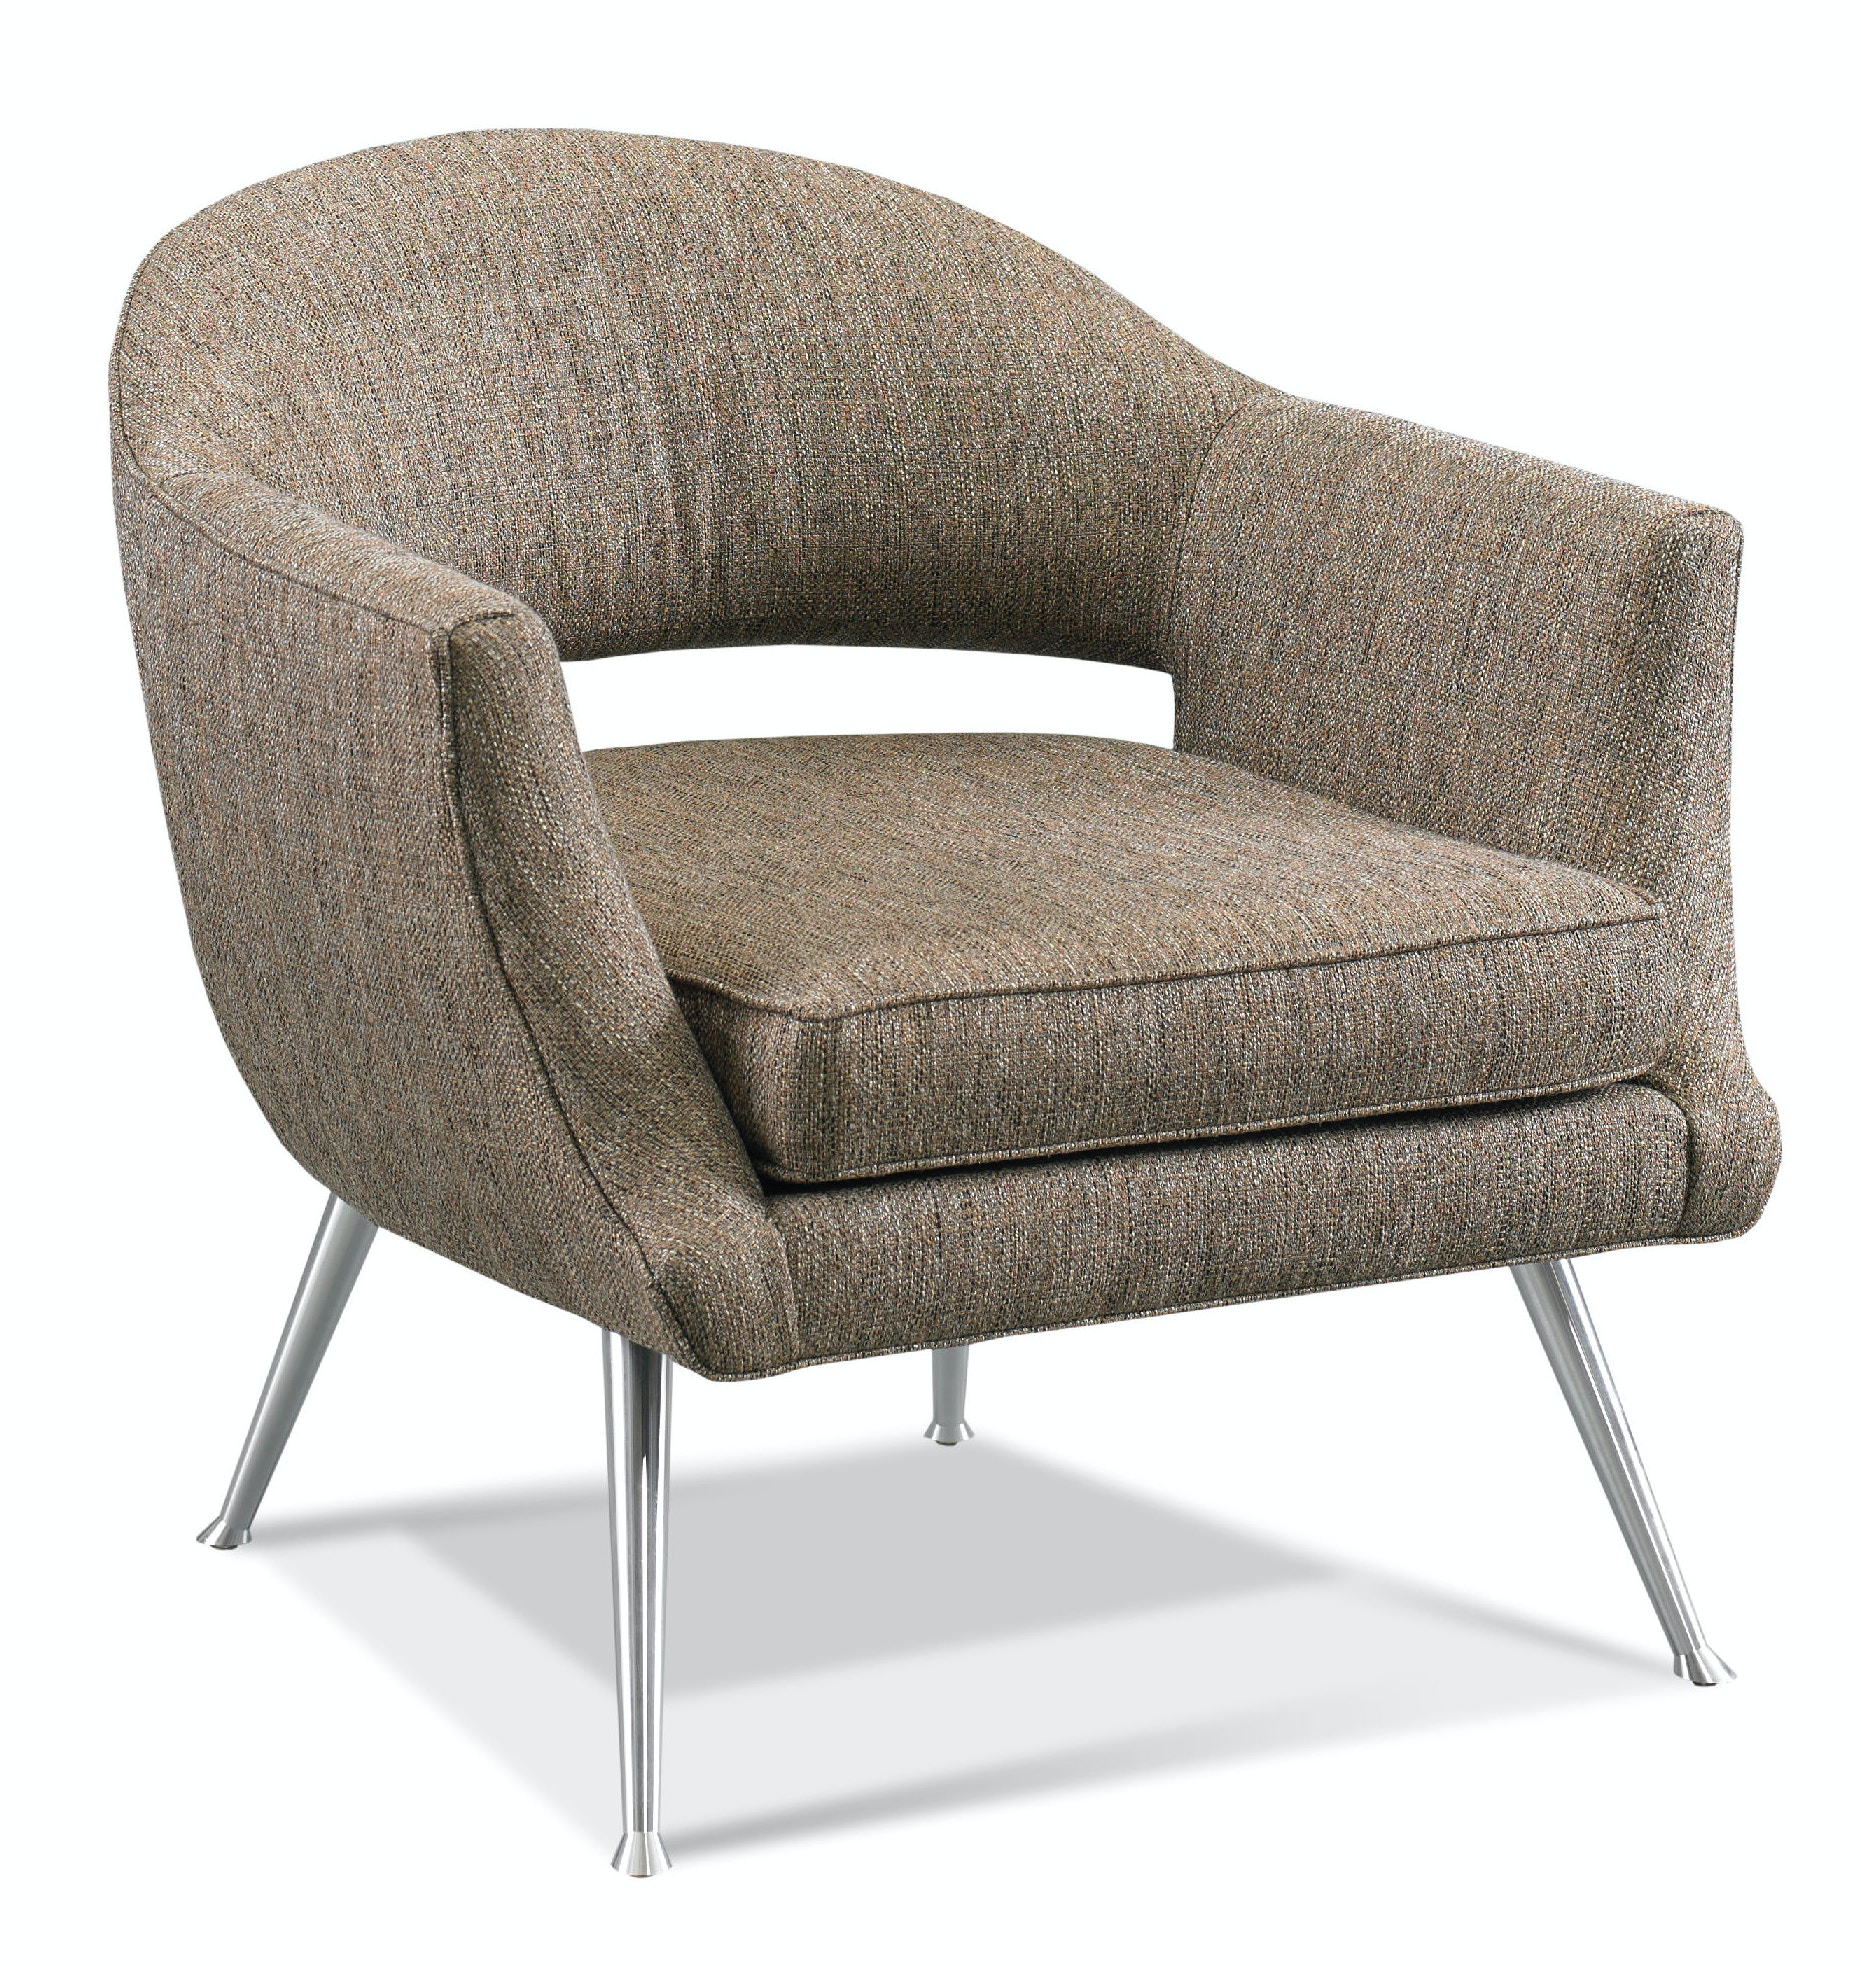 Paragon Furniture Anna Chair 3277 C1 From Walter E. Smithe Furniture +  Design